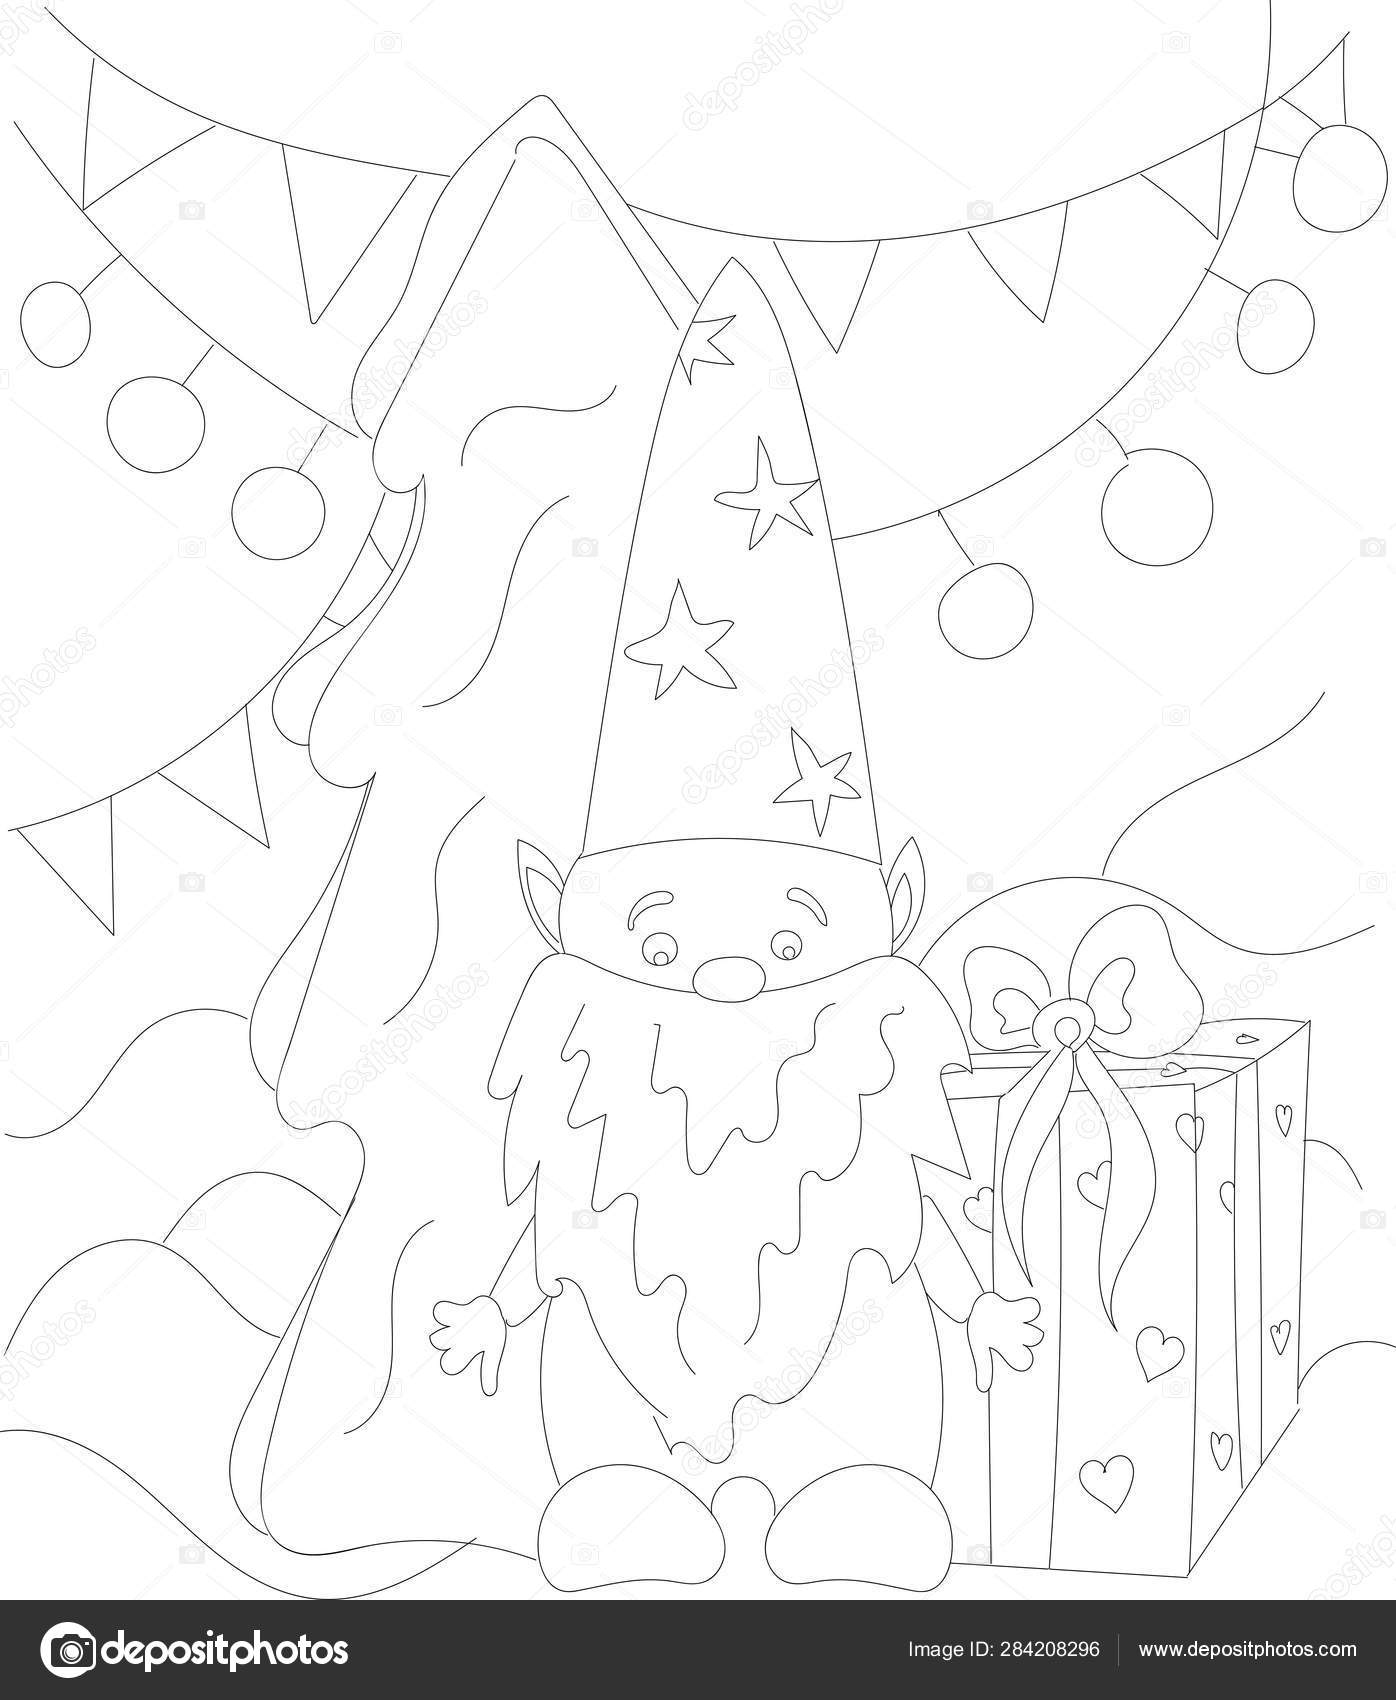 Coloring Book Of Babies: Christmas Book Coloring Pages with Funny ... | 1700x1396